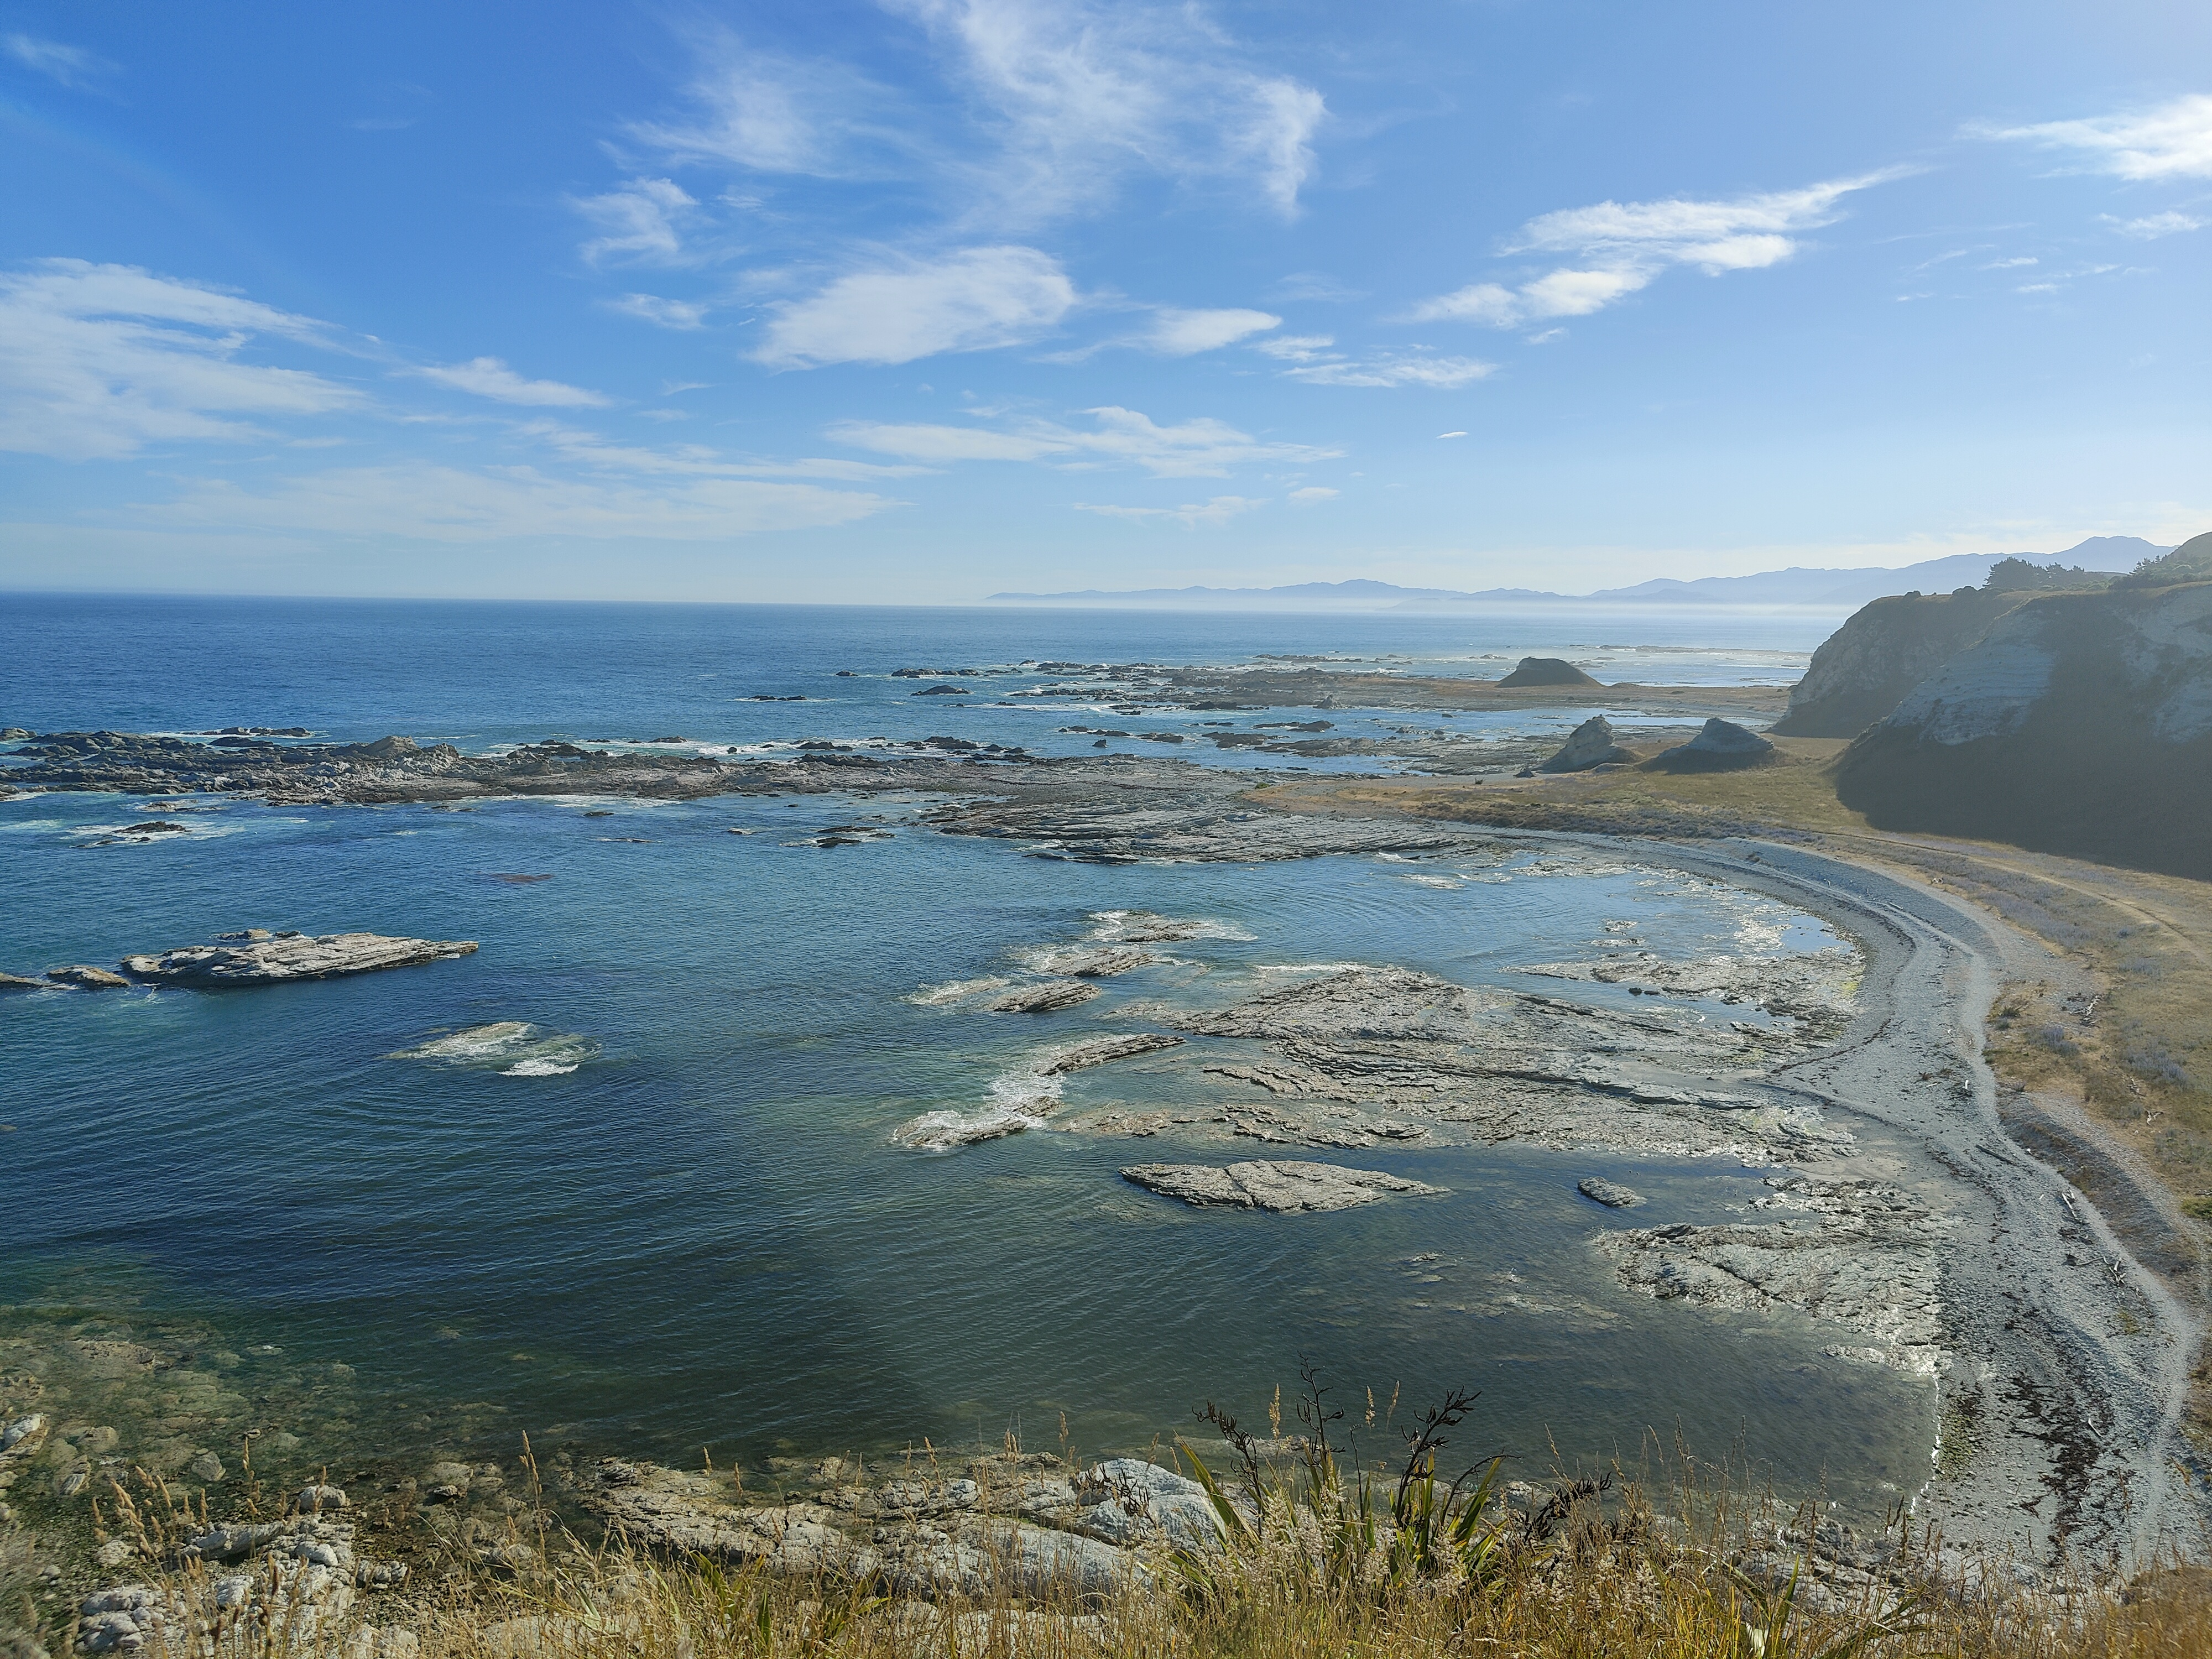 Another view from the Kaikoura Peninsula Walkway